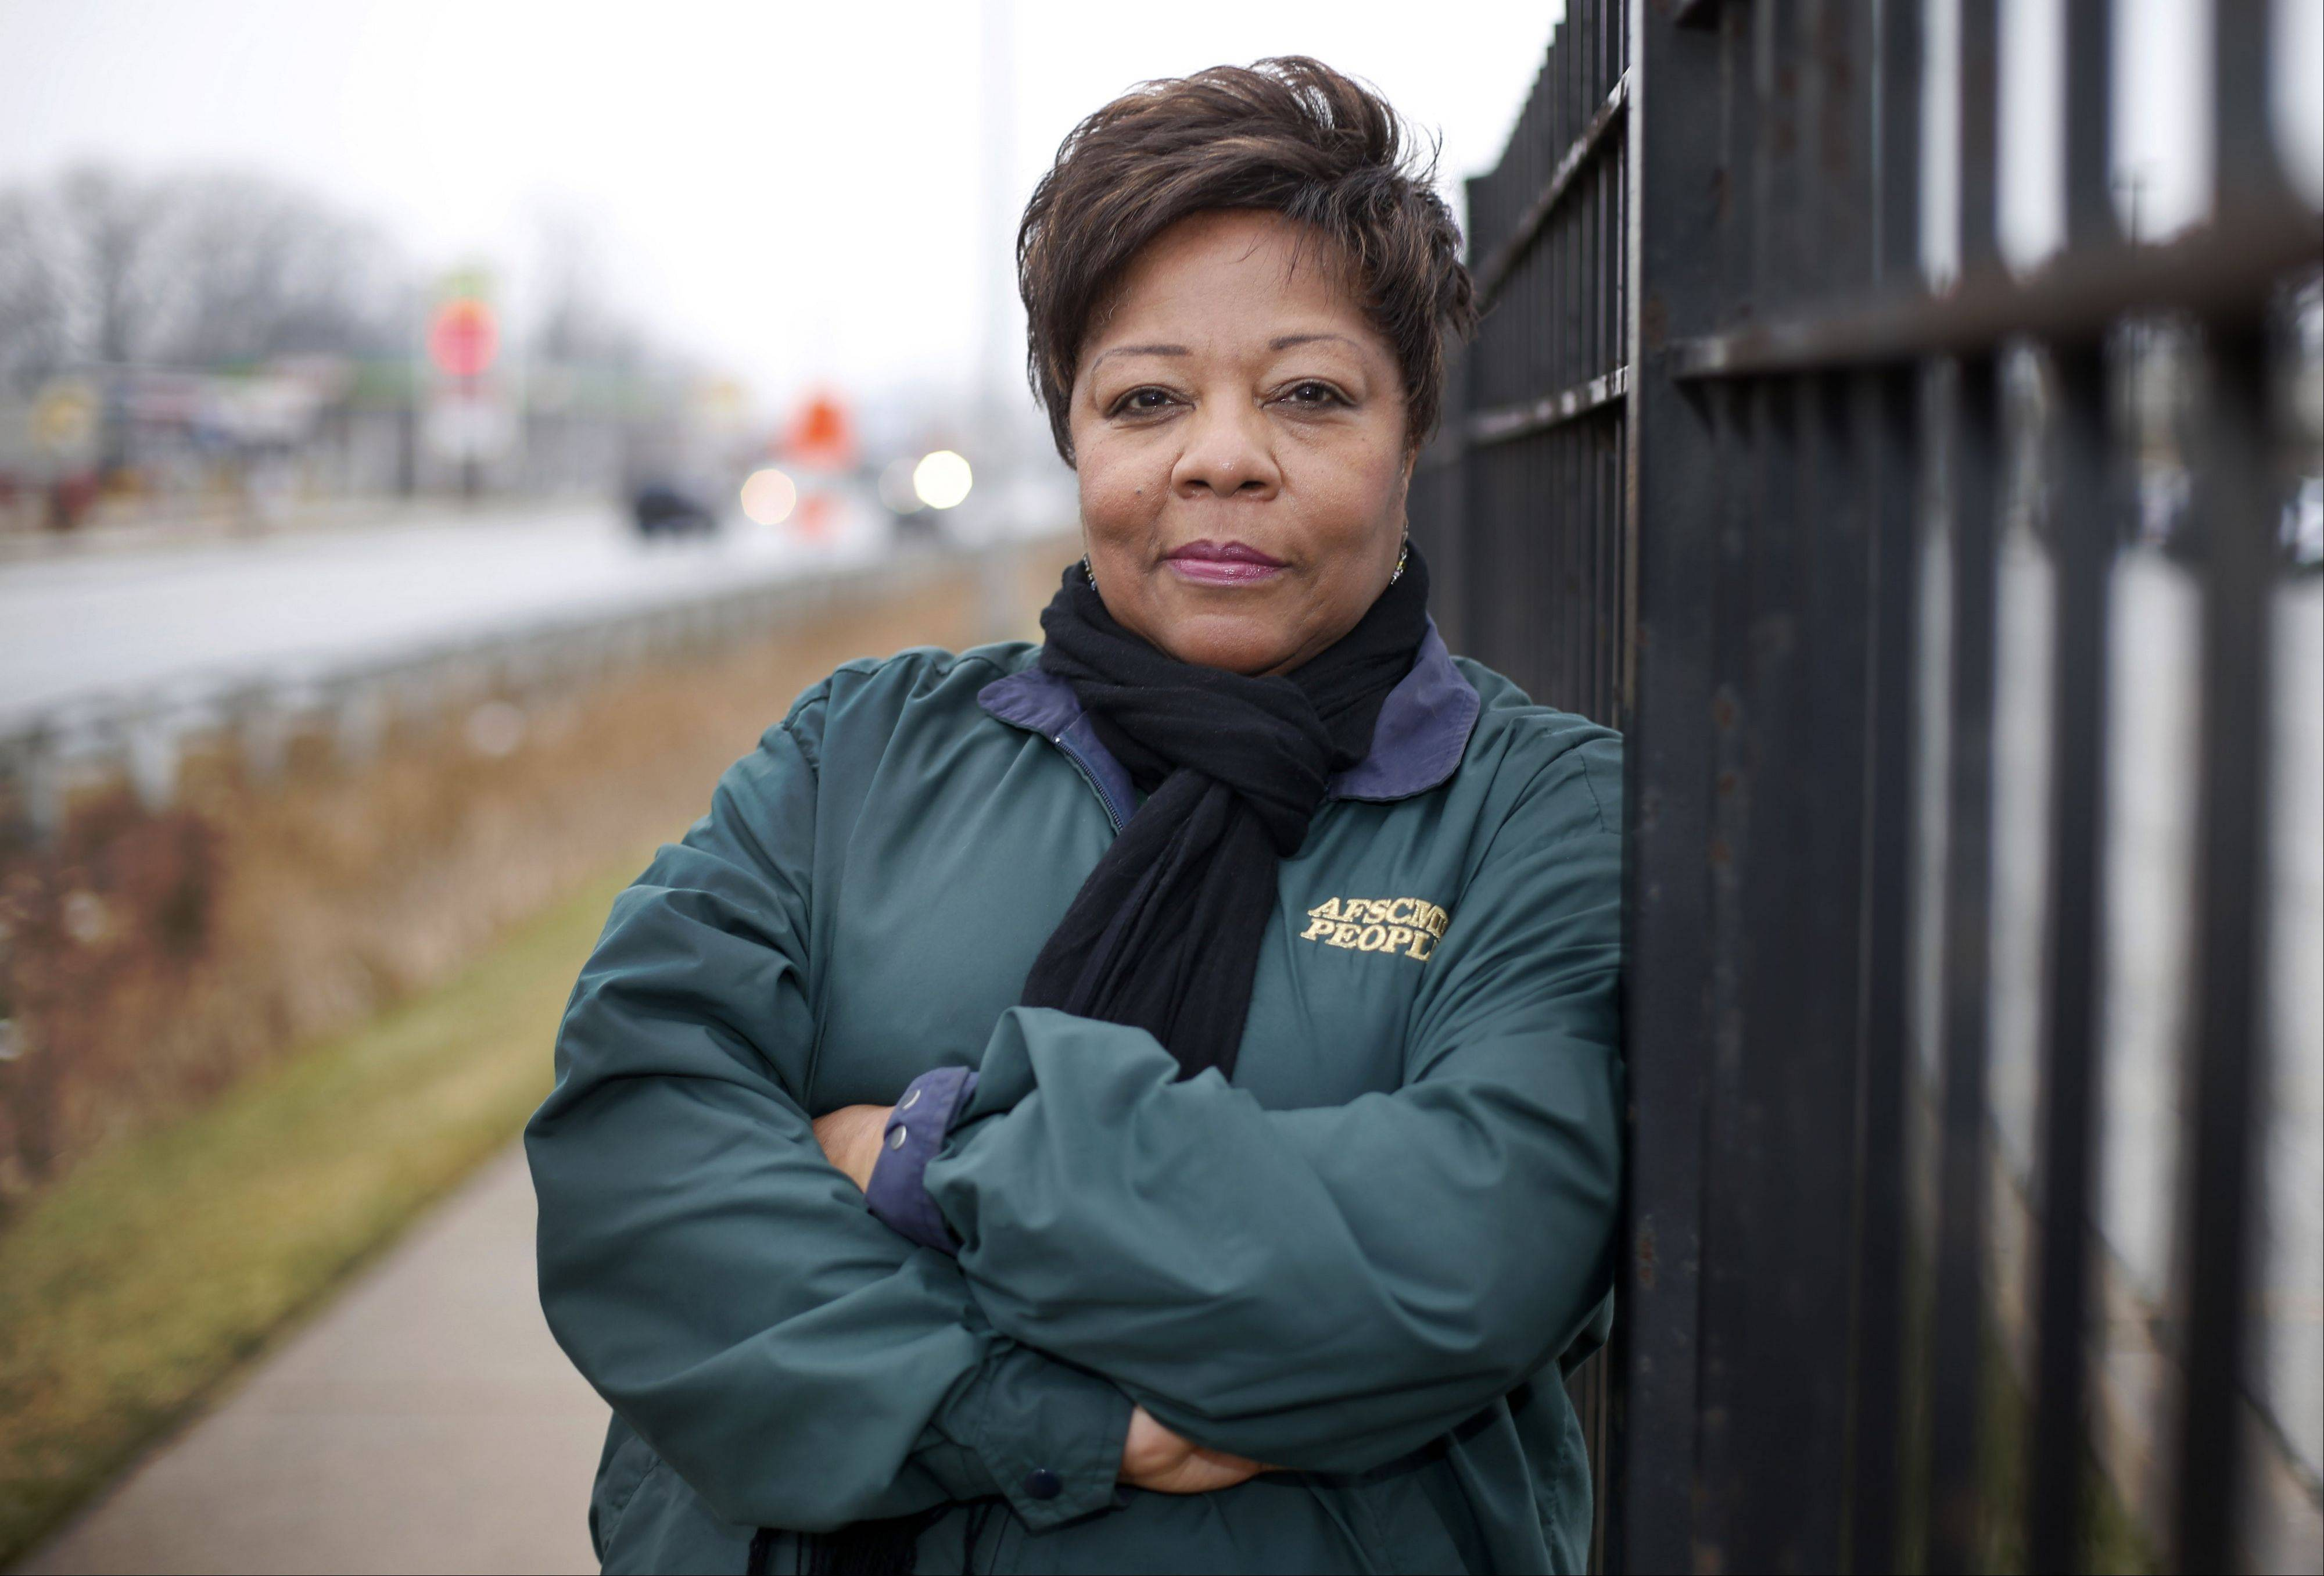 JoAnn Washington-Murry, 60, of East Hazelcrest has spent almost 20 years as a child welfare specialist. She had planned to retire in about five years, but now she isn't sure.